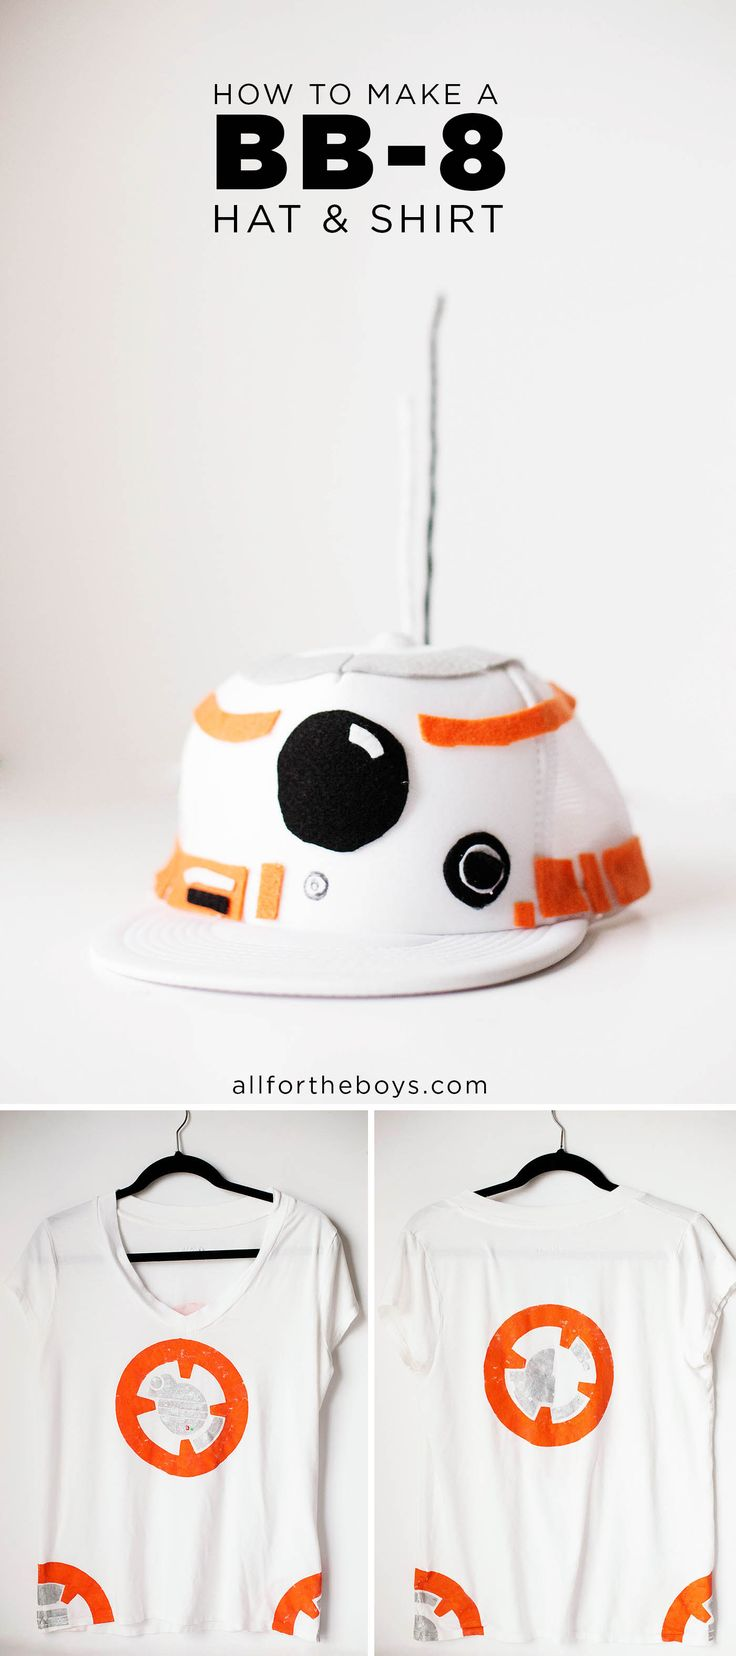 DIY BB-8 Droid hat & shirt costume. Perfect for a Star Wars Run Disney costume, halloween or just a trip to Disneyland or Walt Disney World!